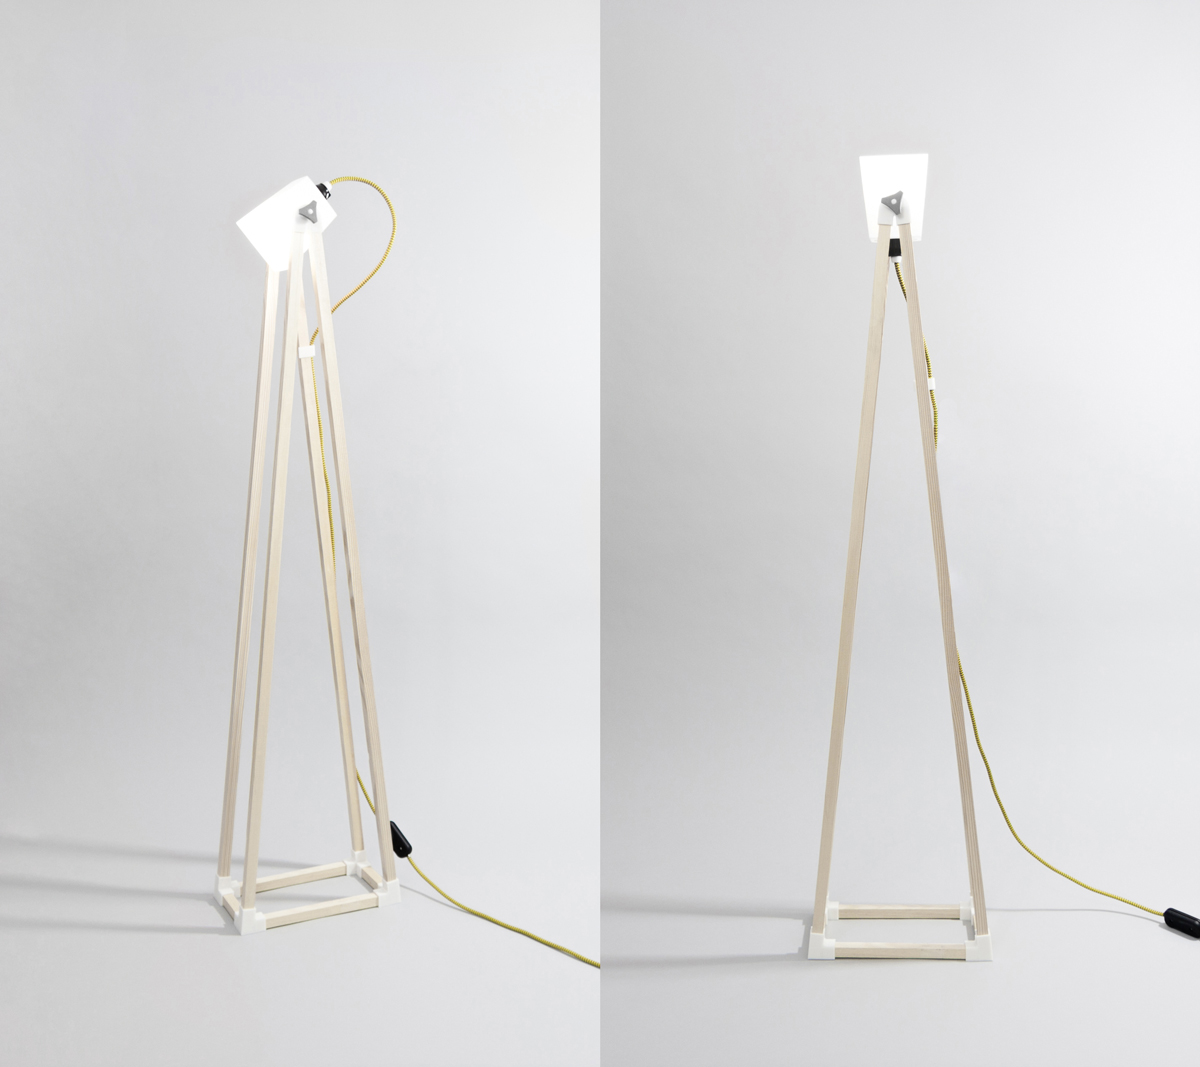 3D printable smf.01 lamp from uau project cults